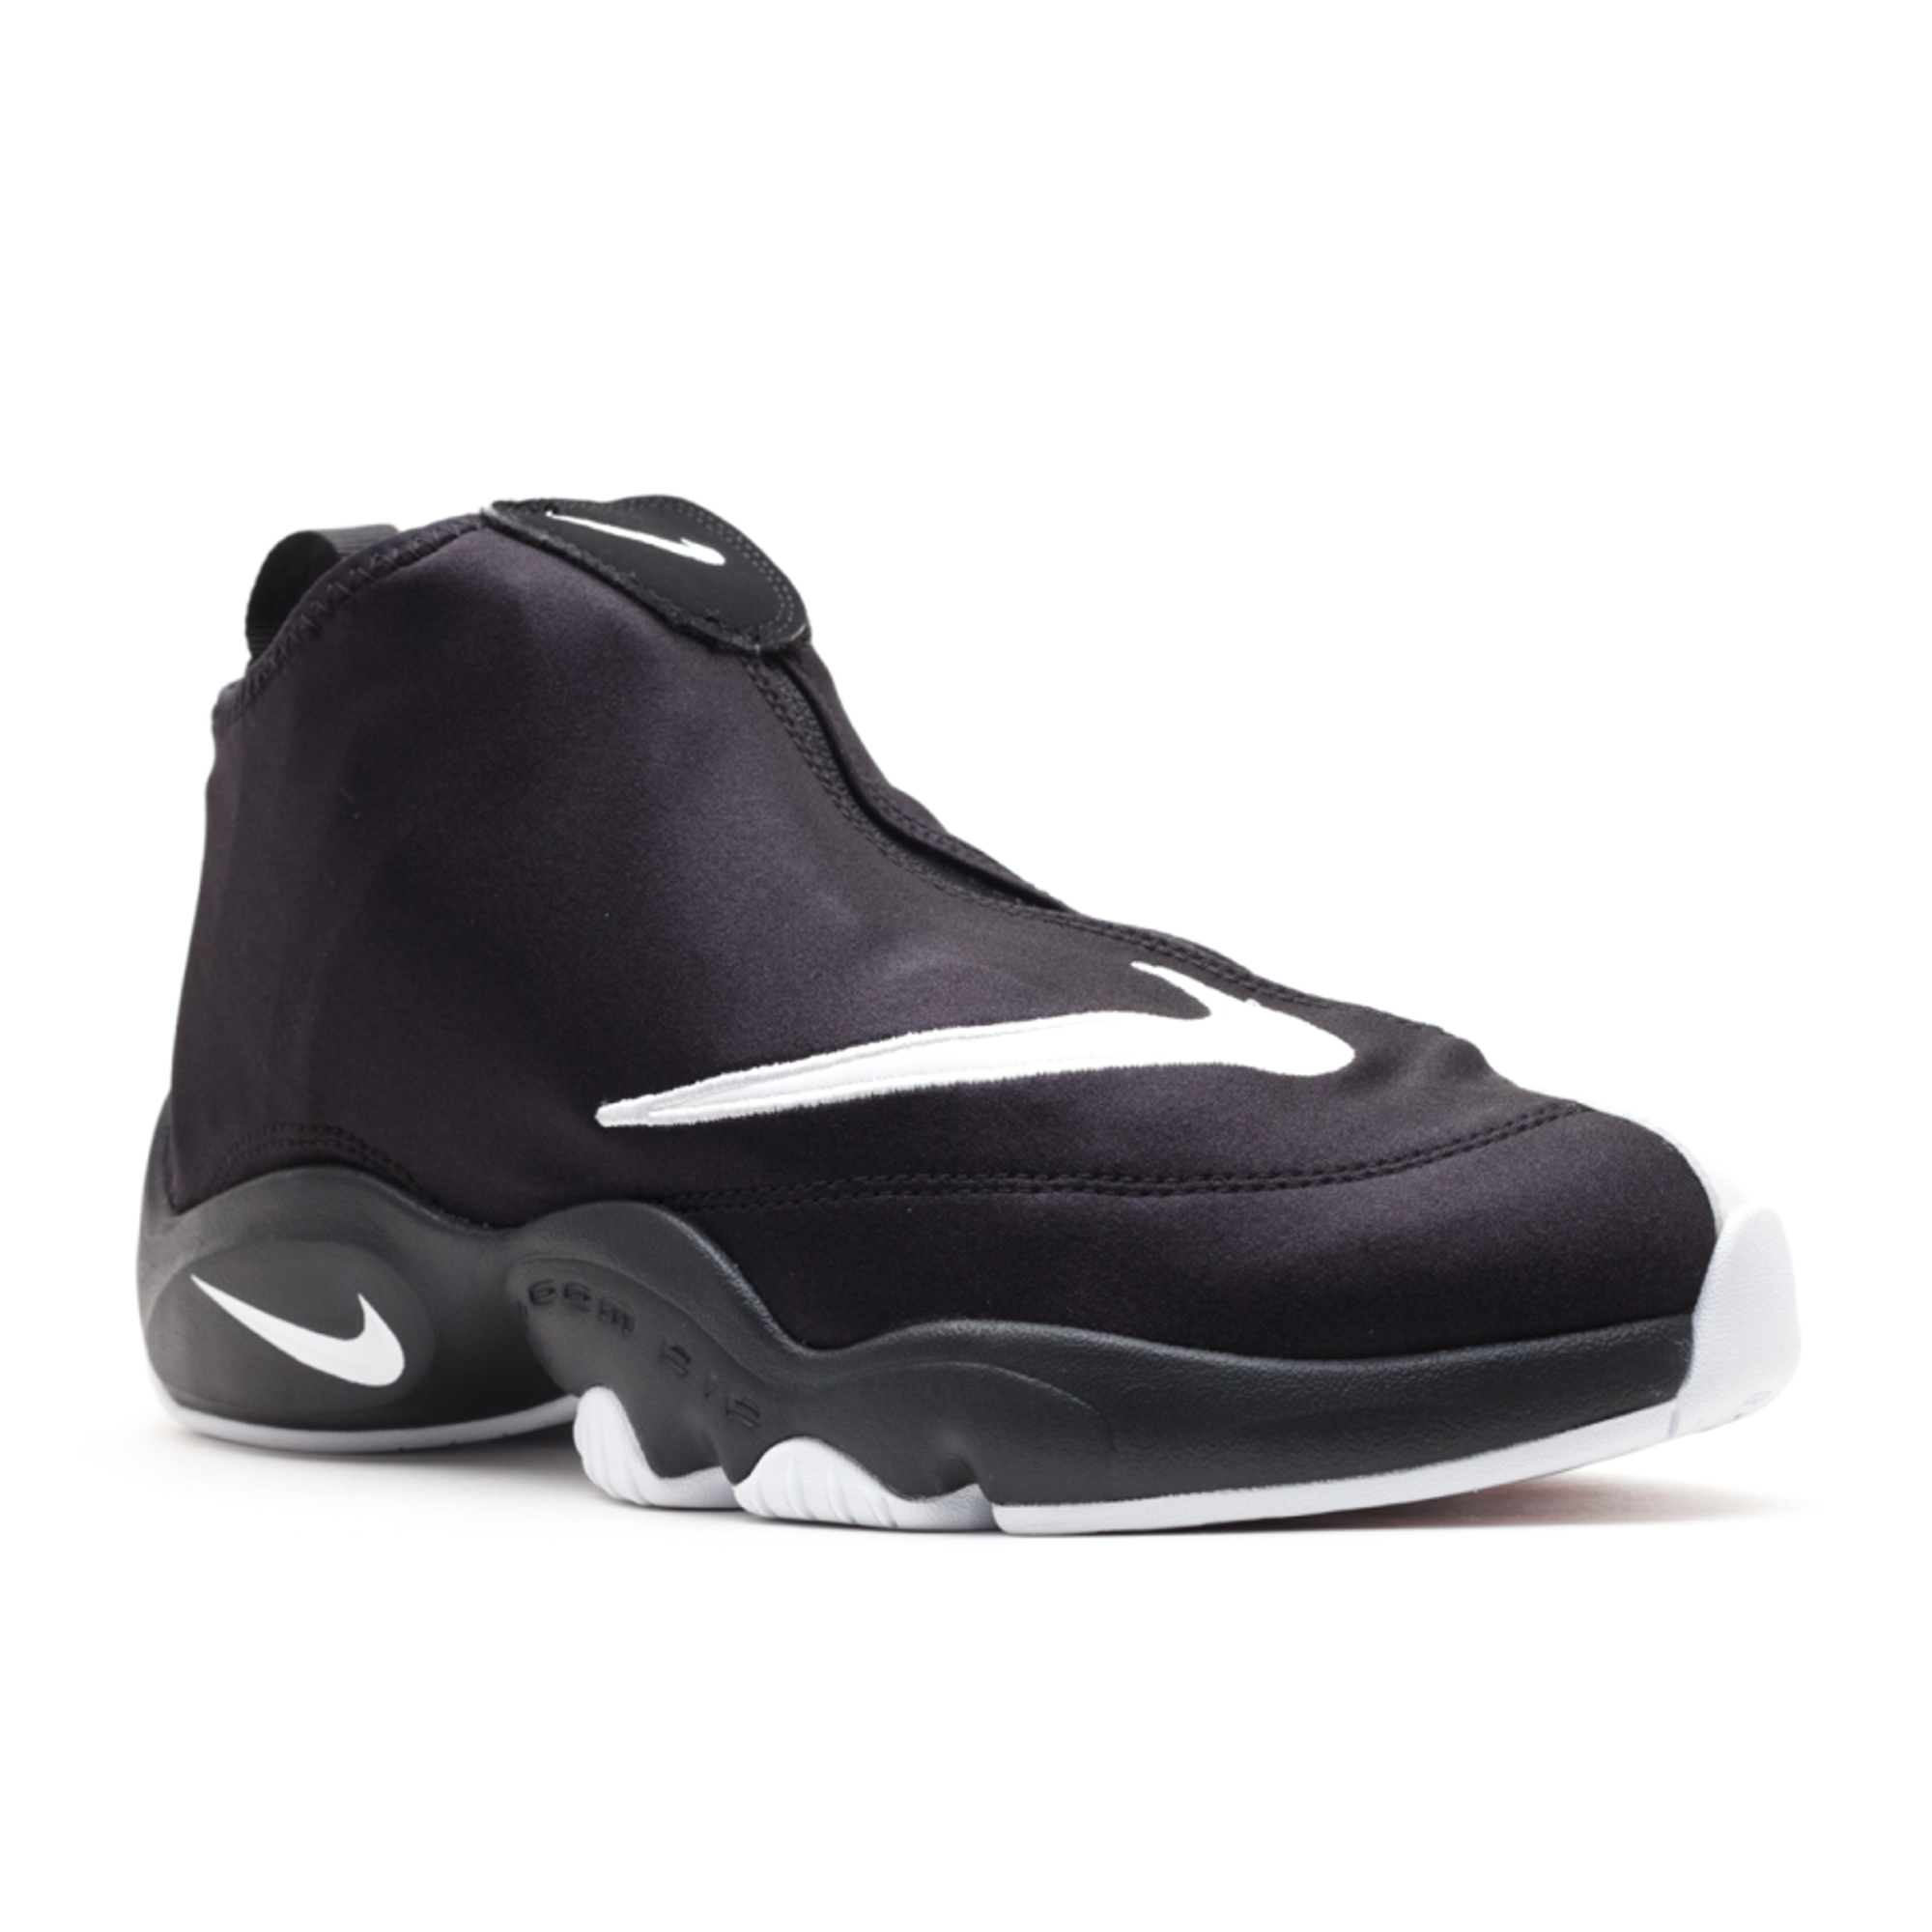 competitive price buy good where can i buy Nike - Men - Air Zoom Flight The Glove 'Gary Payton' - 616772-001 - Size 12